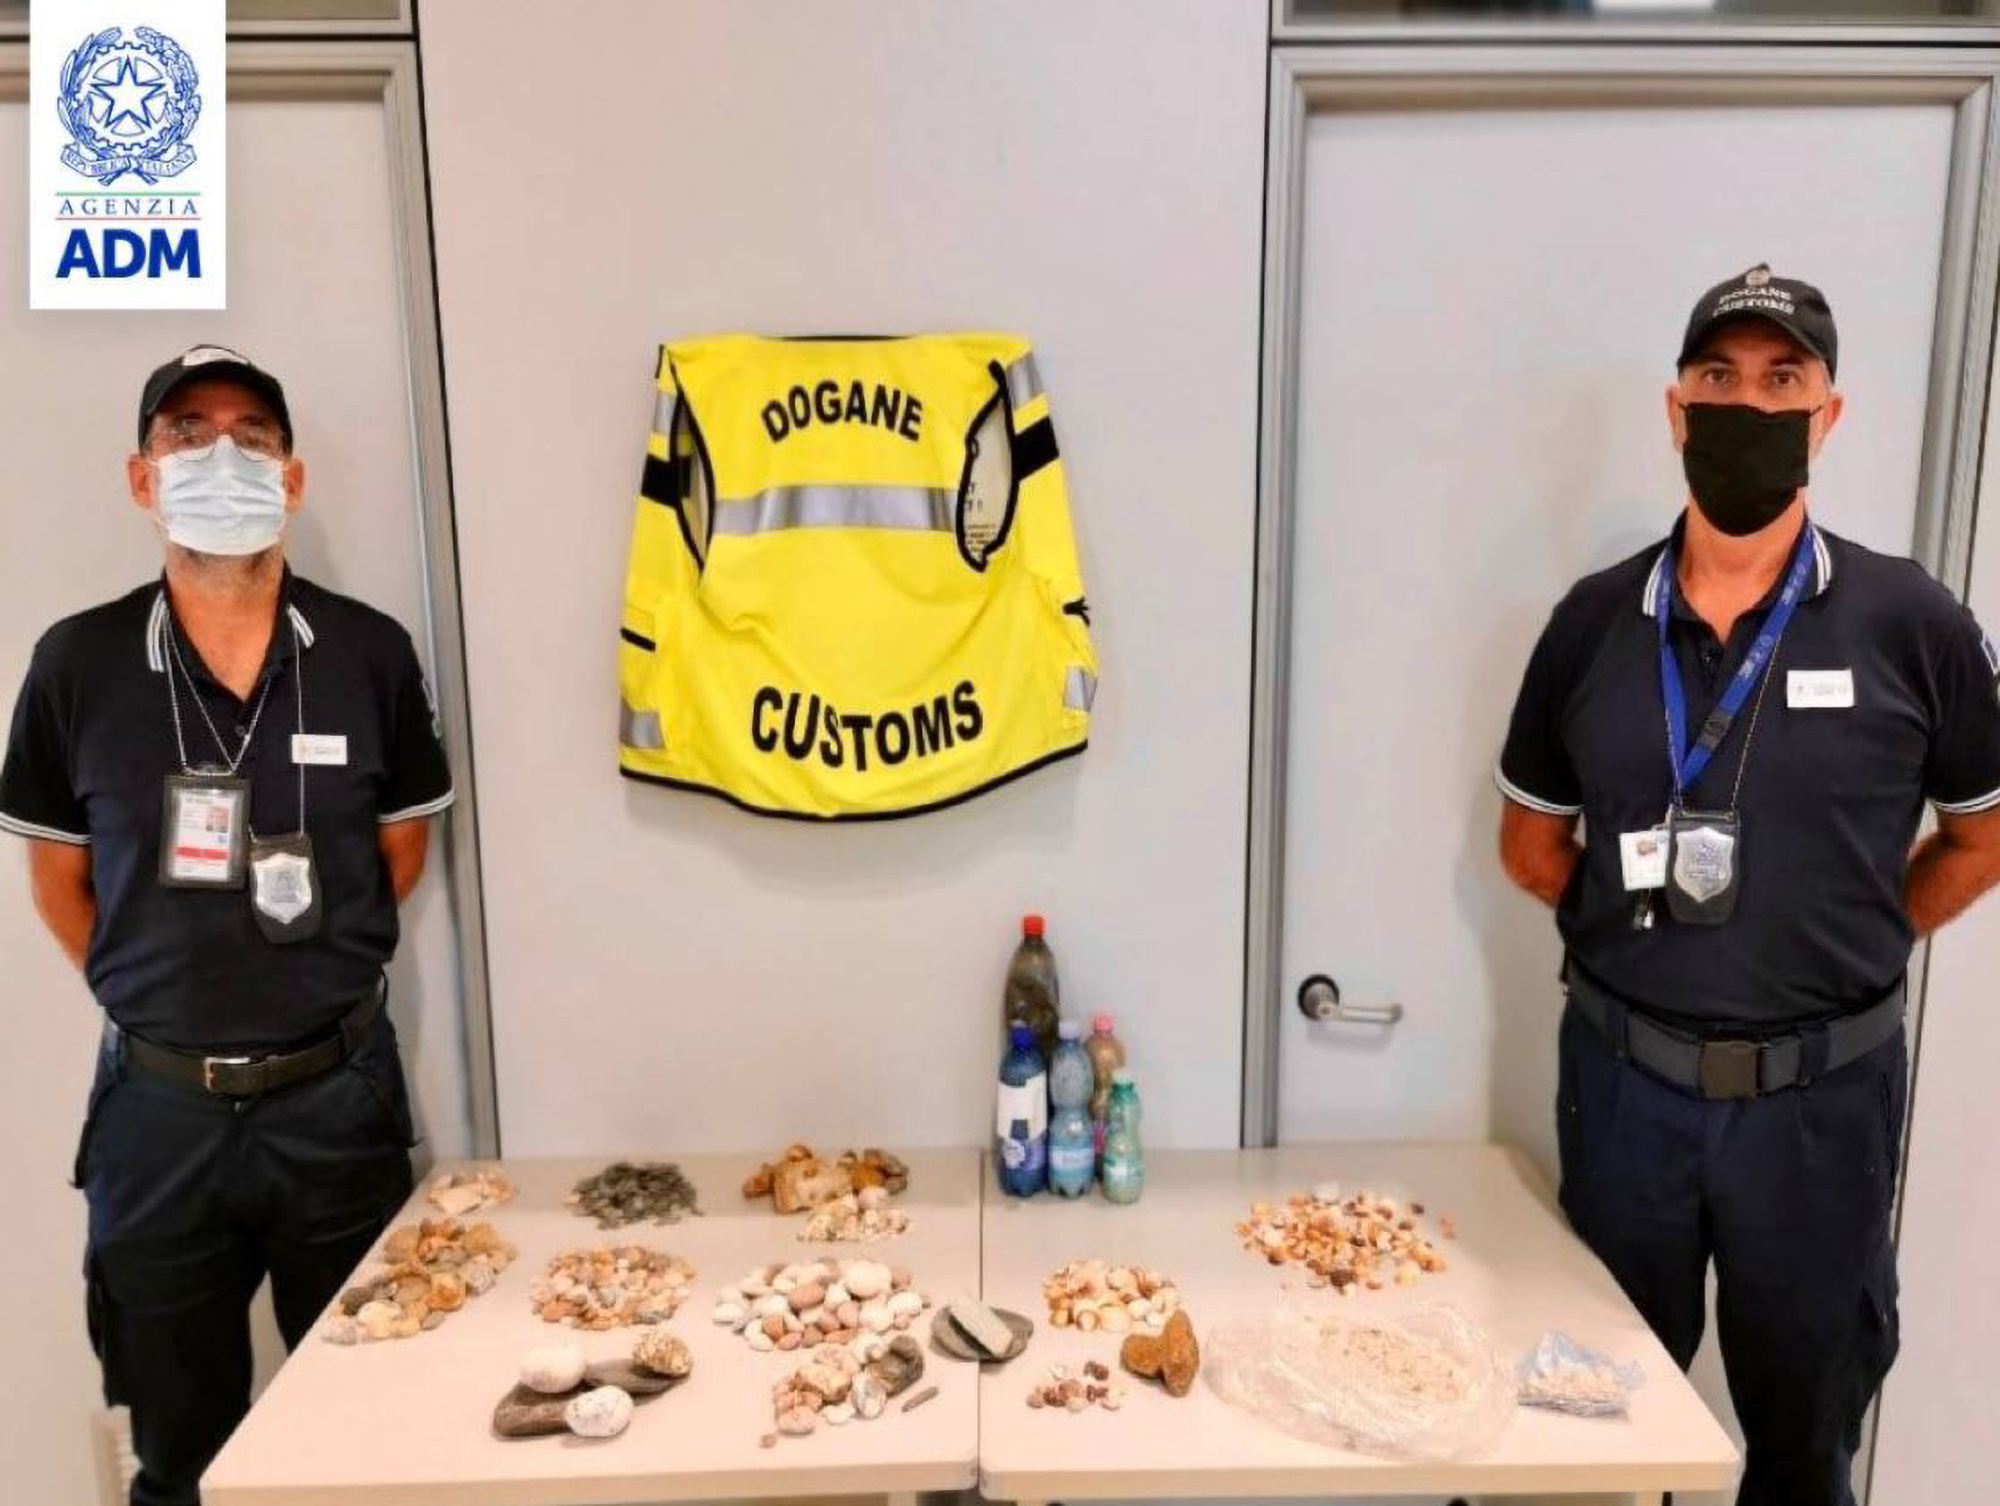 <p>Customs officers confiscated seized, in total, 9,038 pounds of sand in plastic bottles, 476 sea pebbles and 256 shells from passengers' luggage as they were leaving the Italian island of Sardinia from Alghero Airport on Aug. 27. (ADM/Zenger)</p>